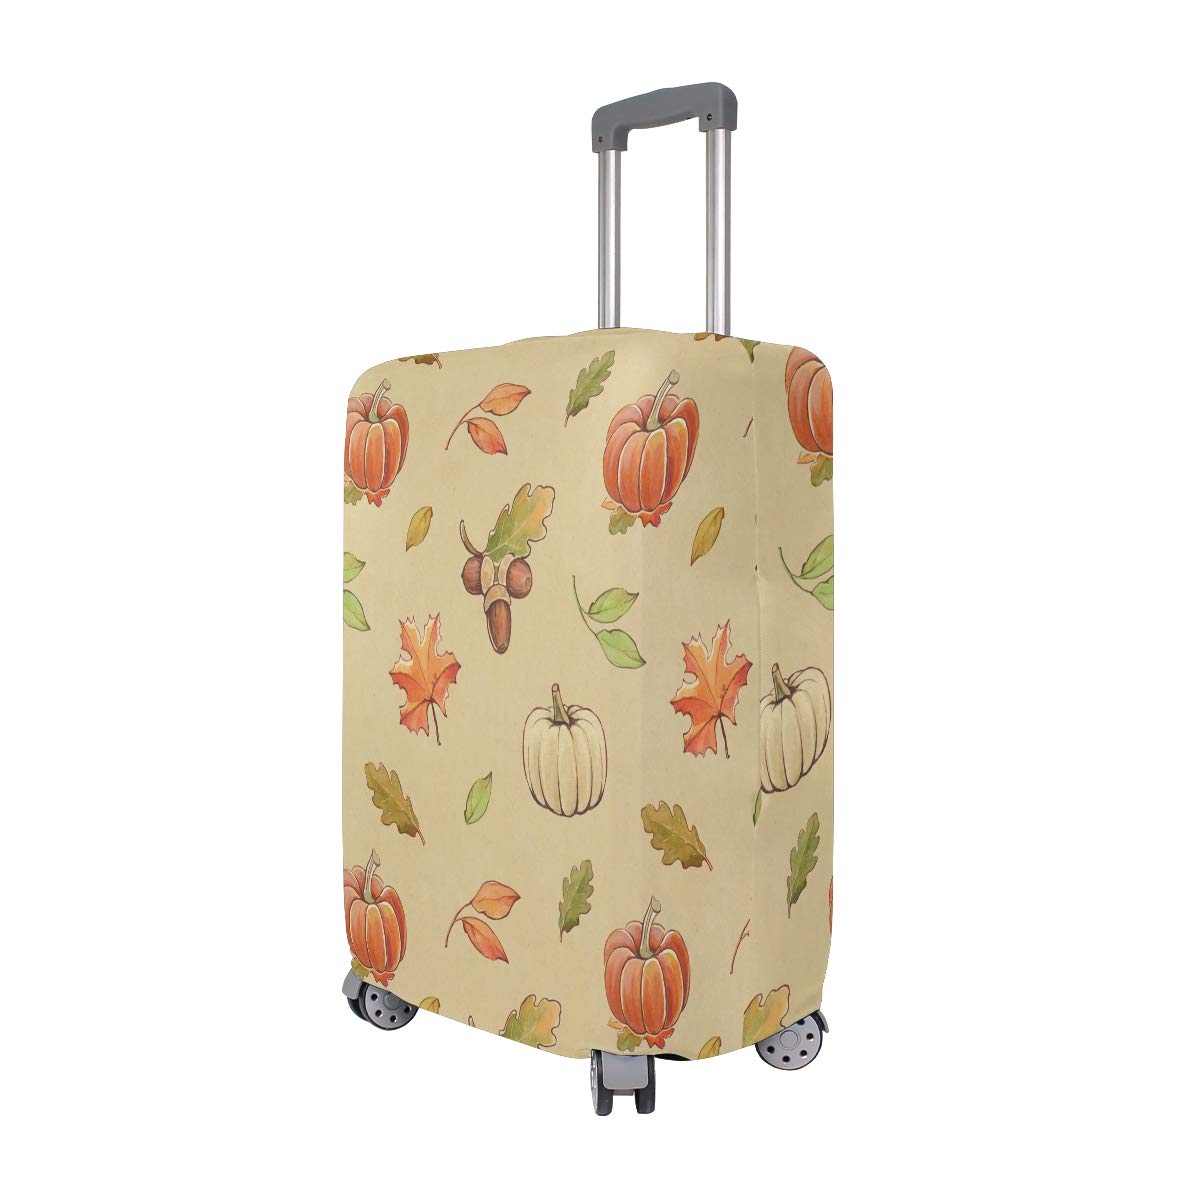 VIKKO Autumn Leaves And Pumpkin Travel Luggage Cover Suitcase Cover Protector Travel Case Bag Protector Elastic Luggage Case Cover Fits 29-32 Inch Luggage for Kids Men Women Travel